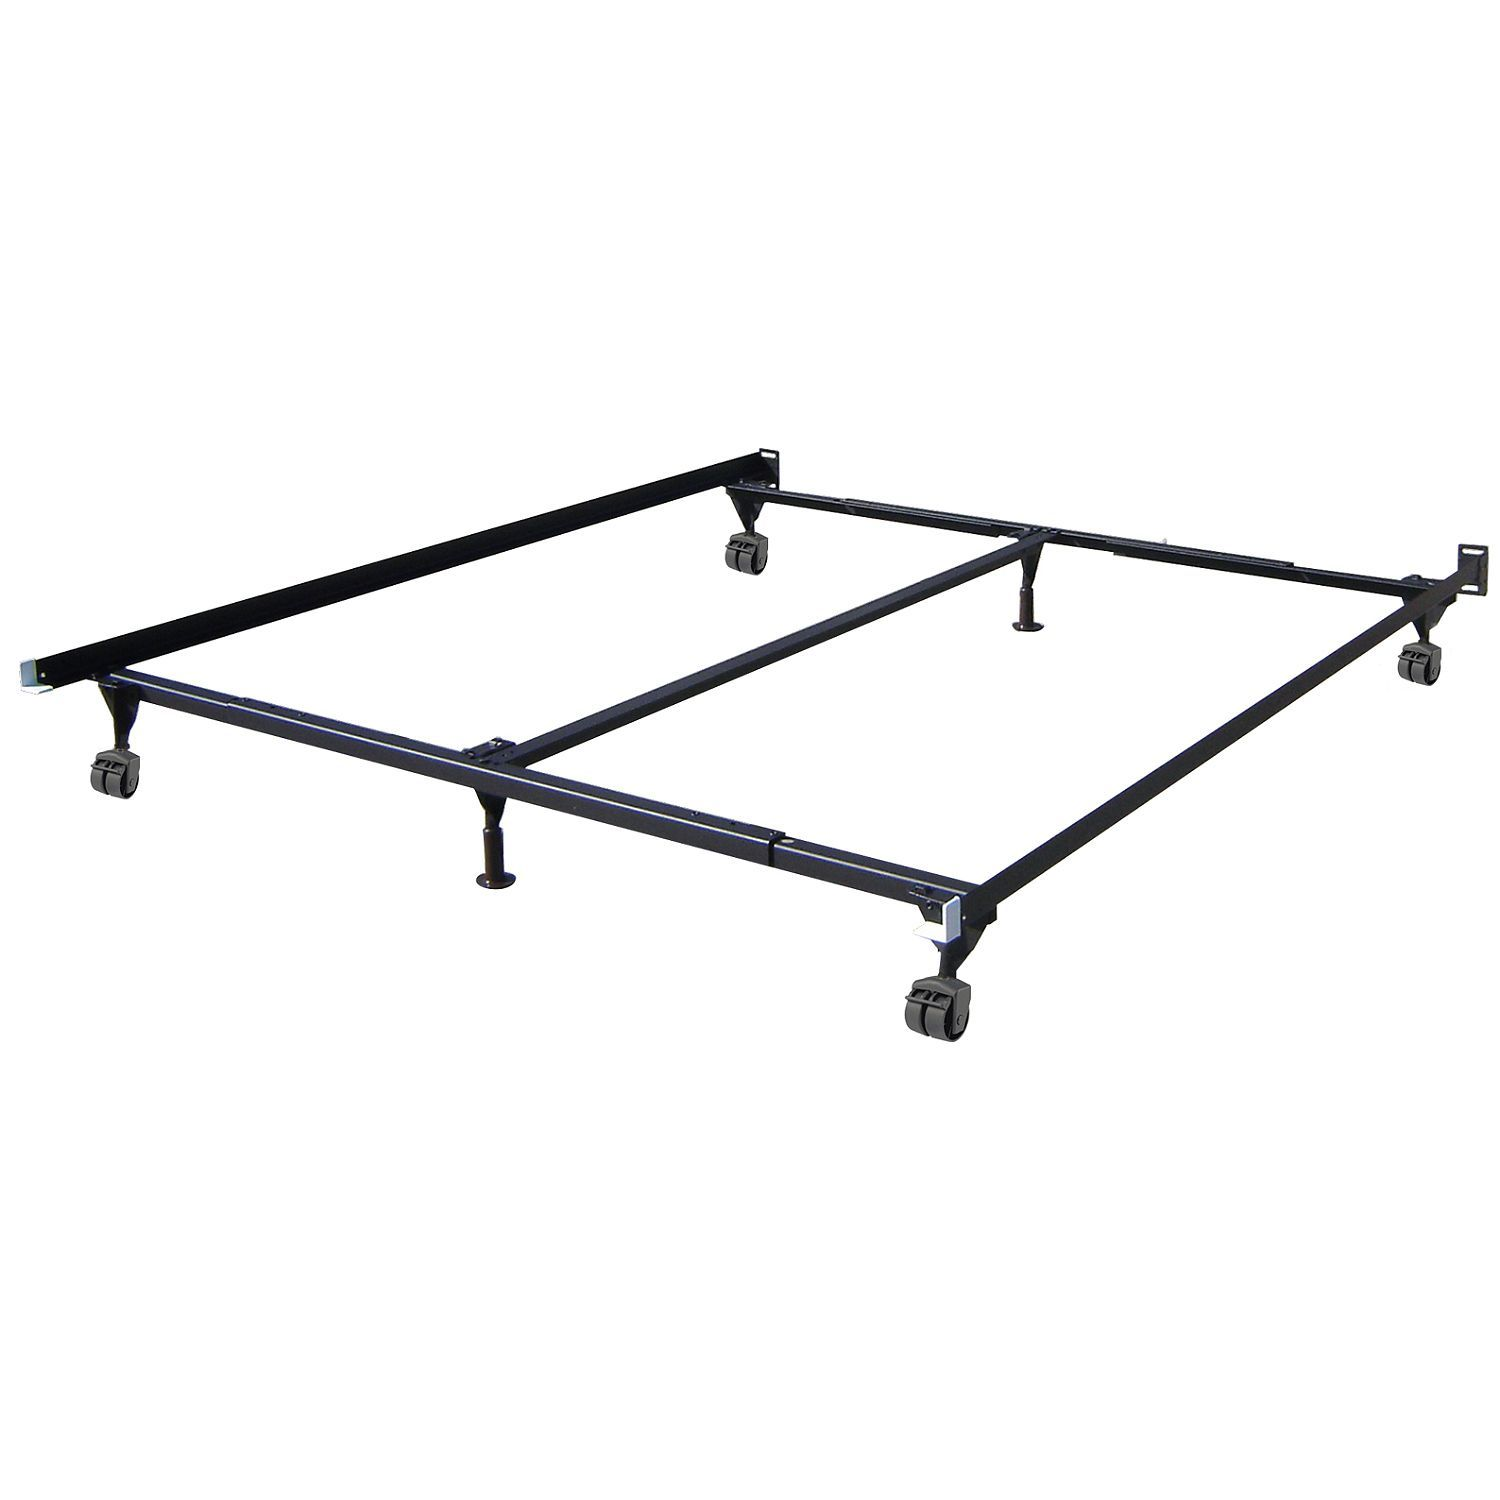 Got It Universal Bed Frame Sam S Club King Bed Frame Black